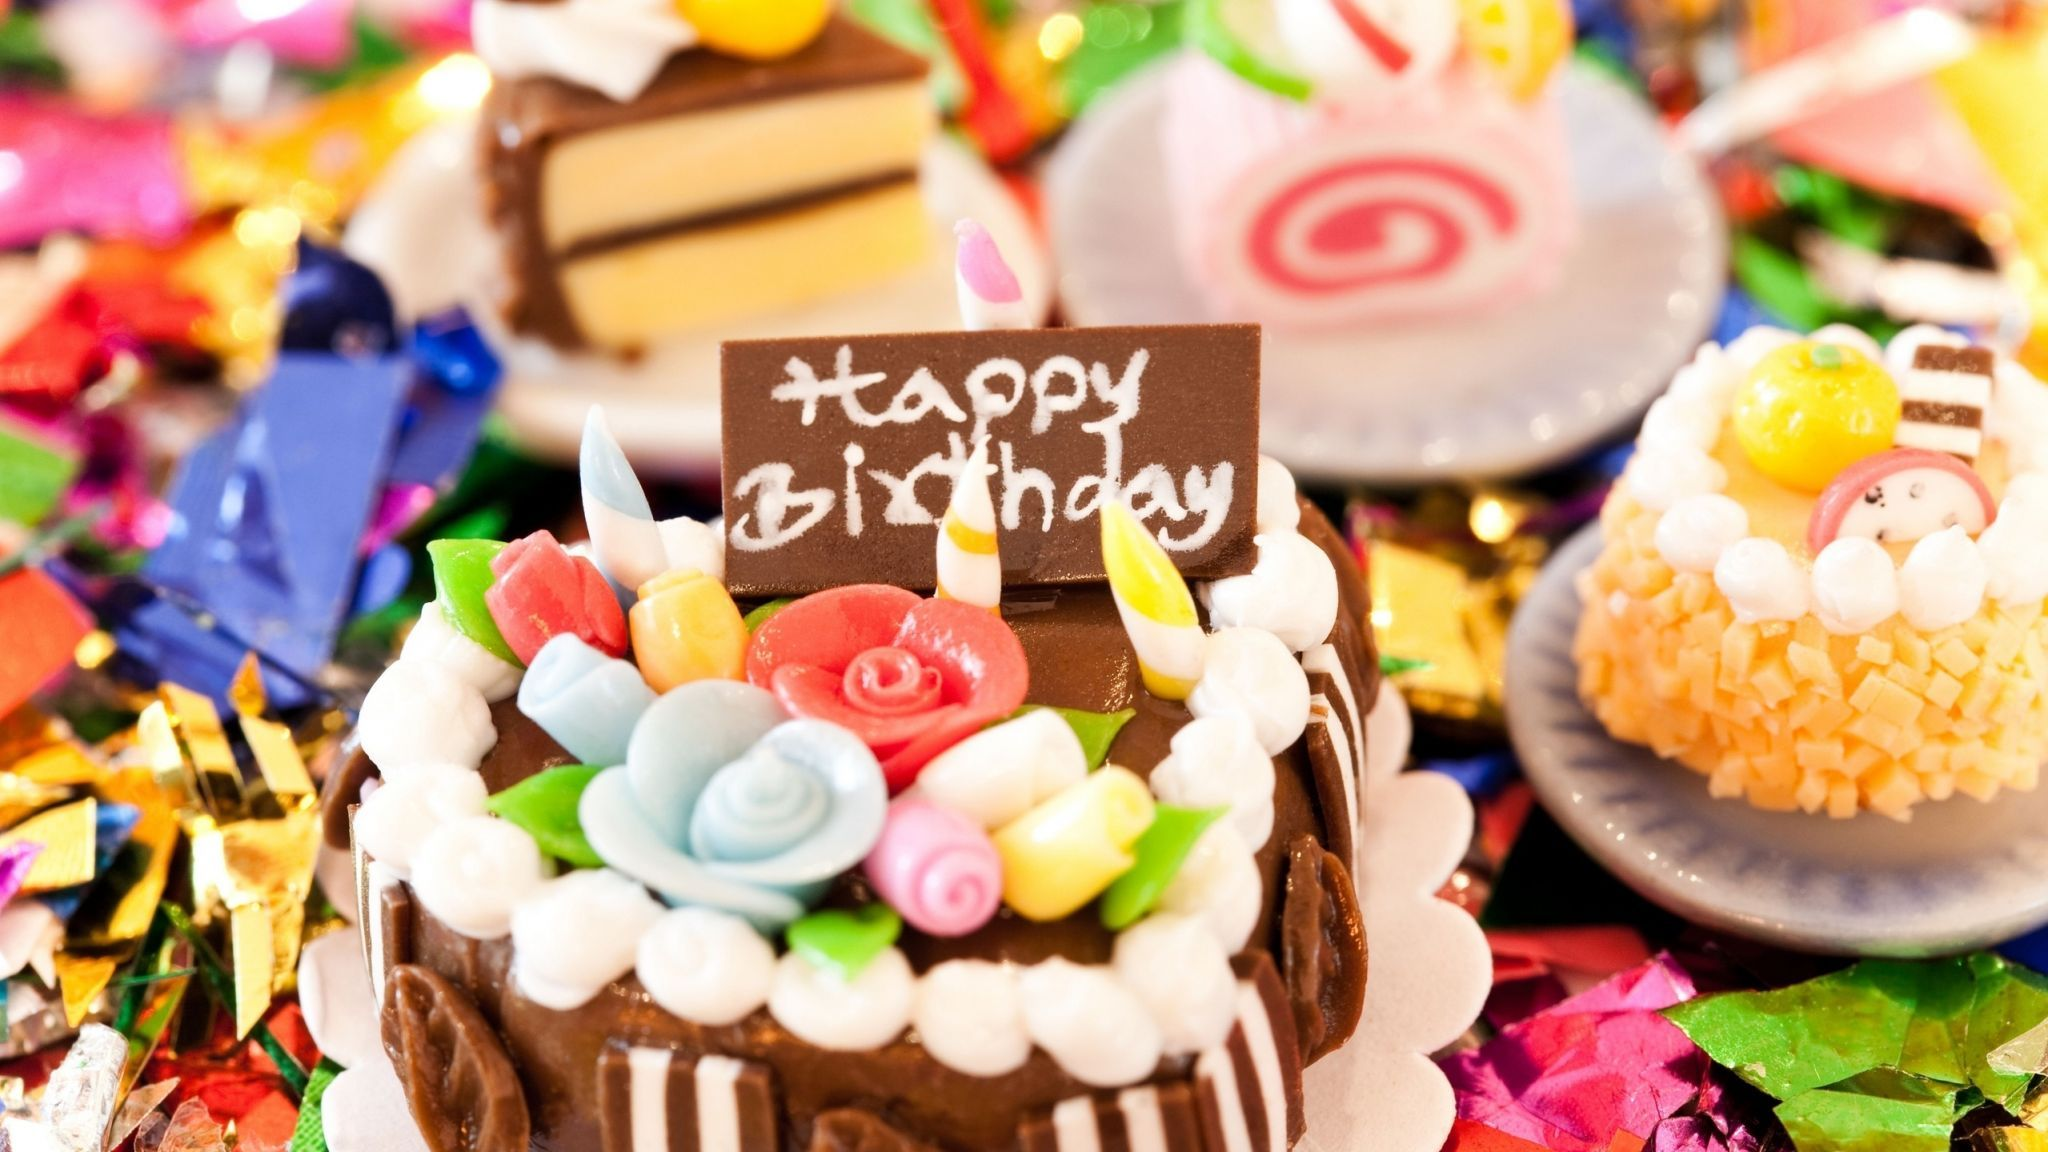 birthday special images hd ; Happy-Birthday-Cake-Chocolate-Wallpaper-For-Android